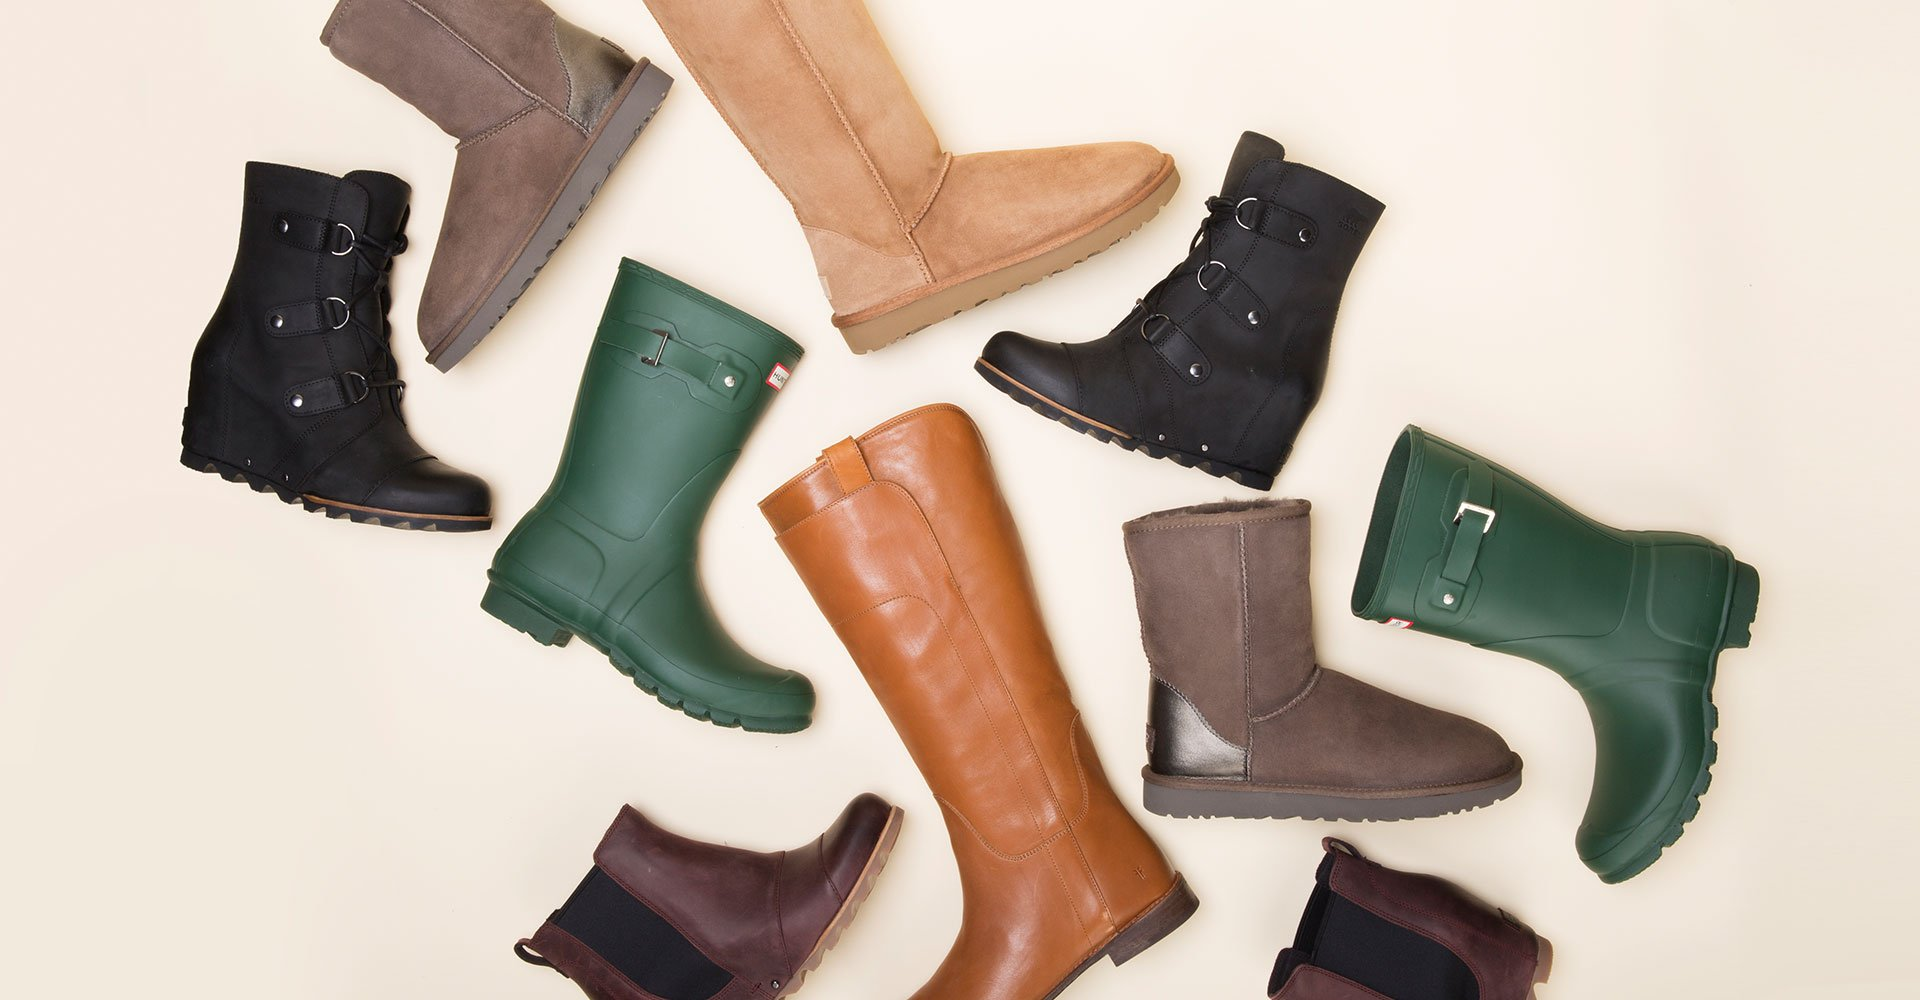 Image linking to Womens boots.